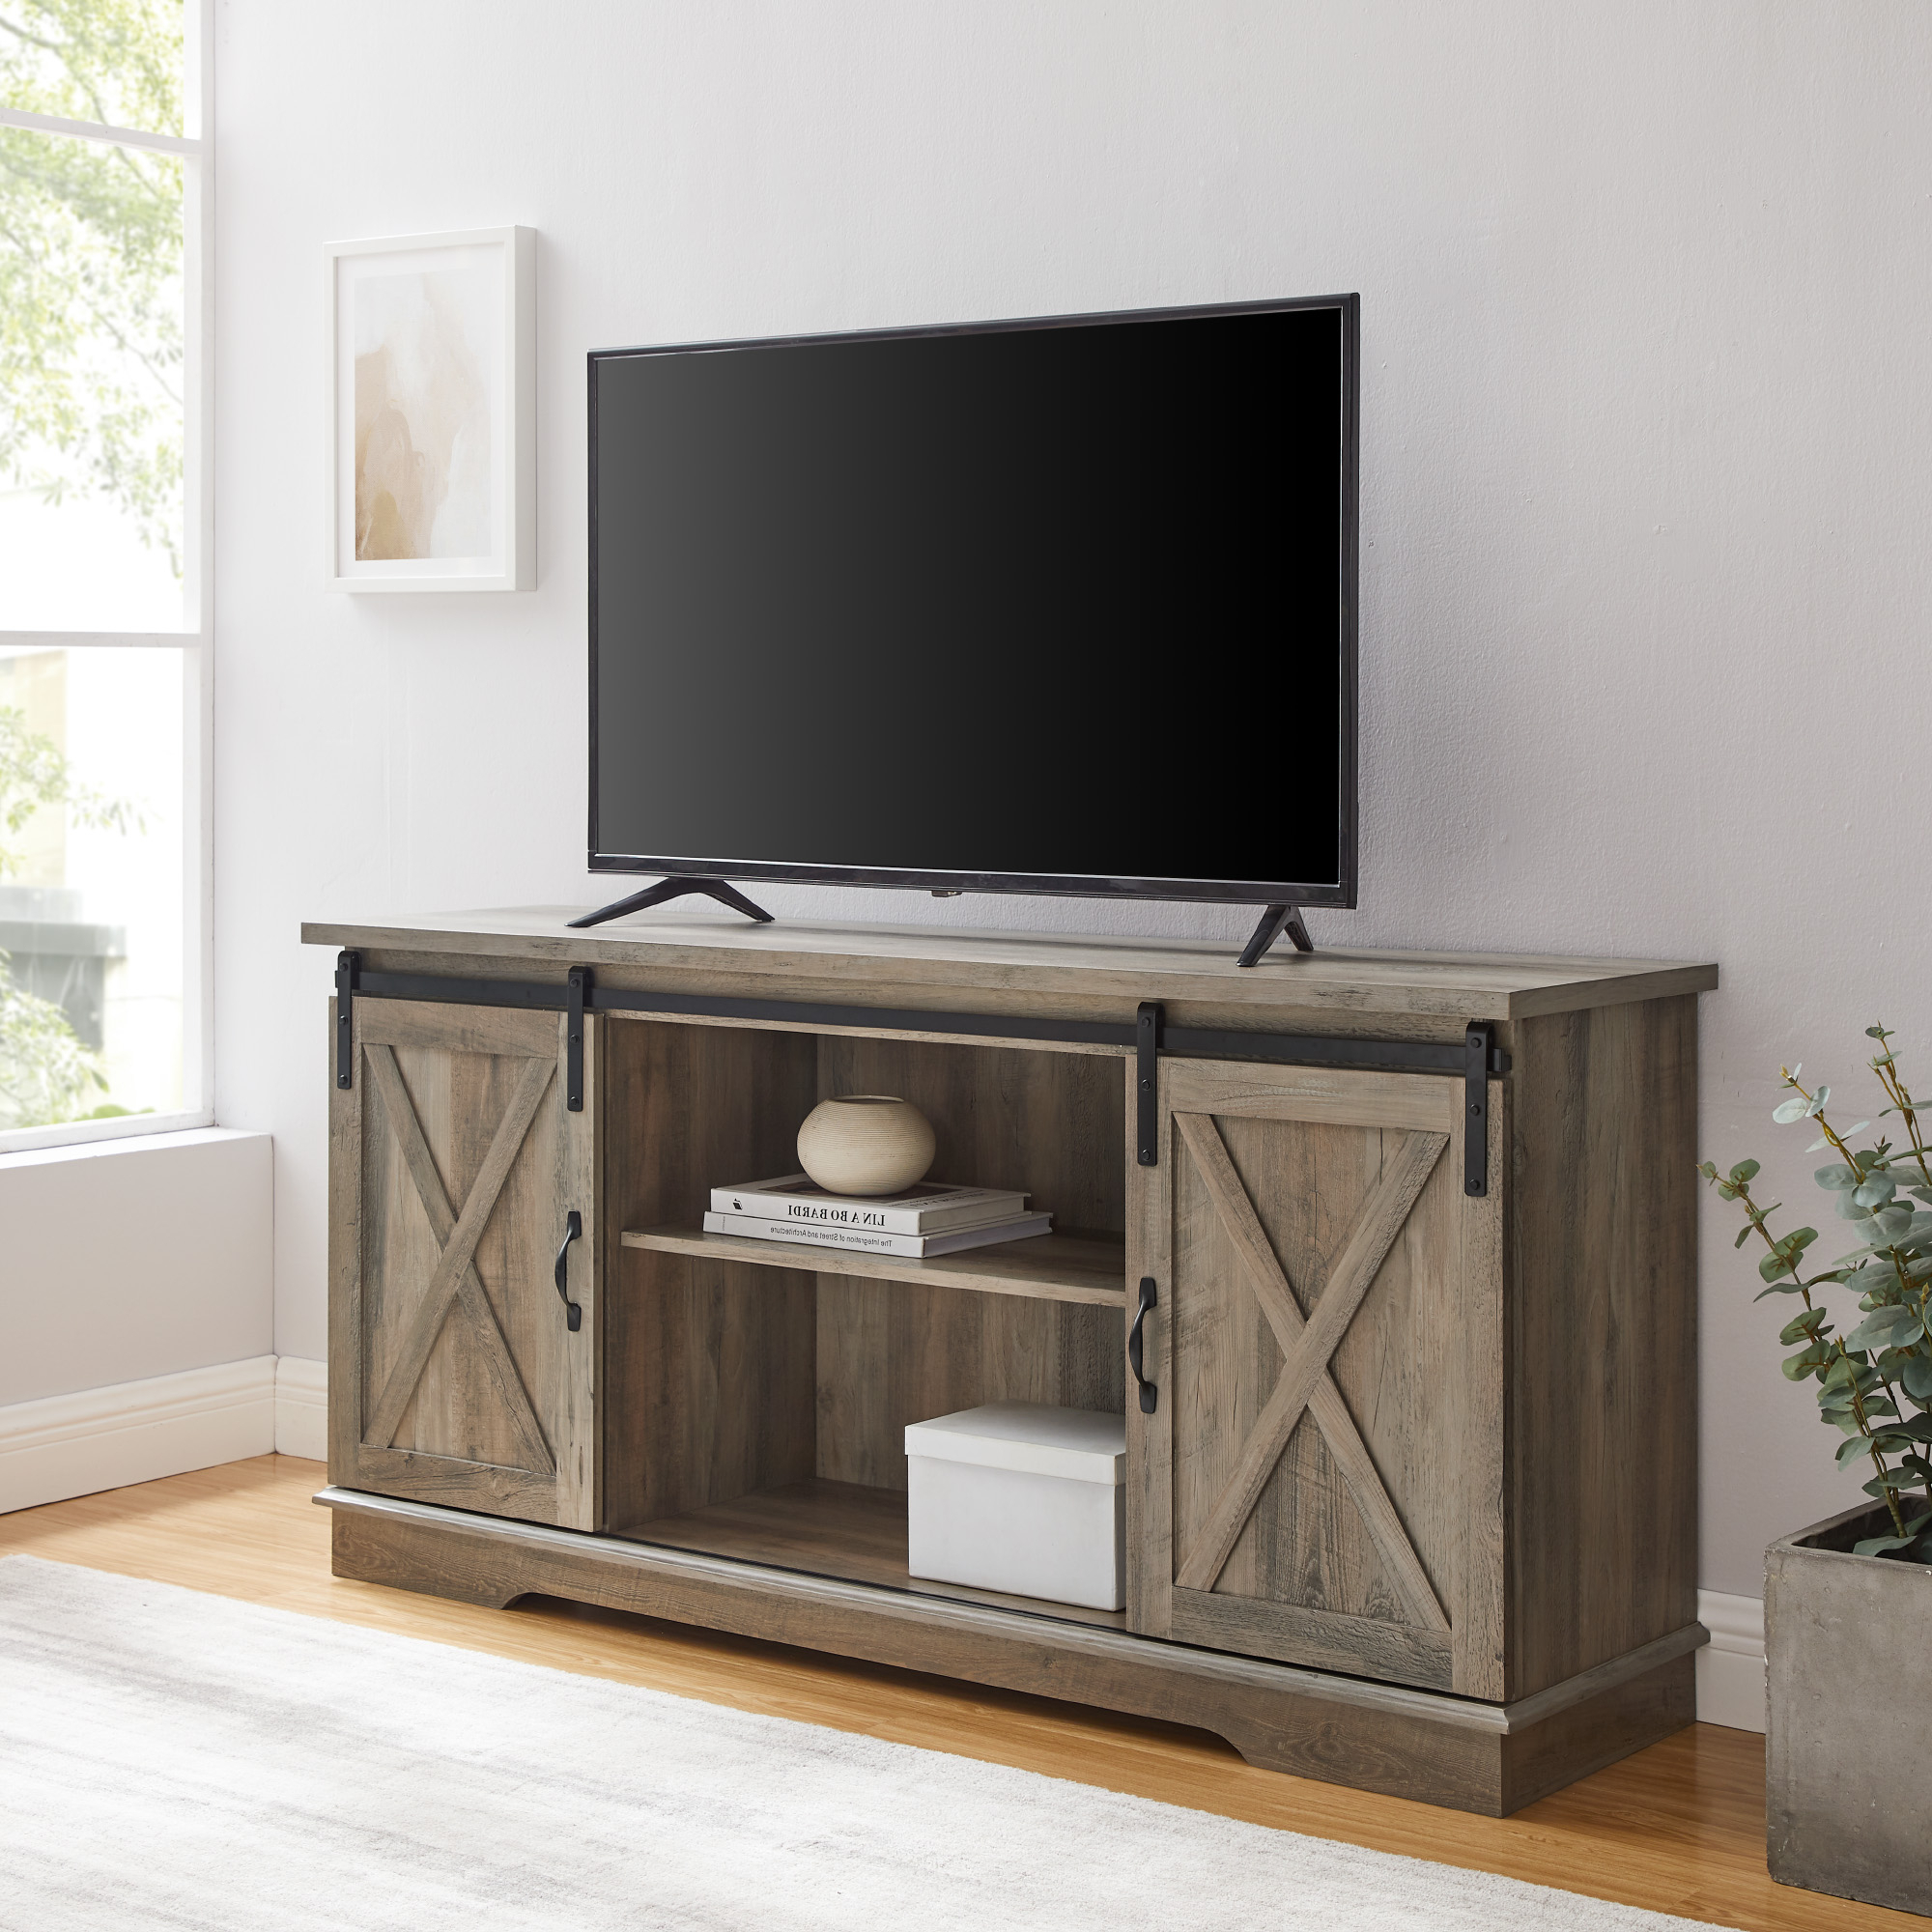 """2018 Woven Paths Farmhouse Sliding Barn Door Tv Stand For Tvs Pertaining To Wolla Tv Stands For Tvs Up To 65"""" (View 1 of 25)"""